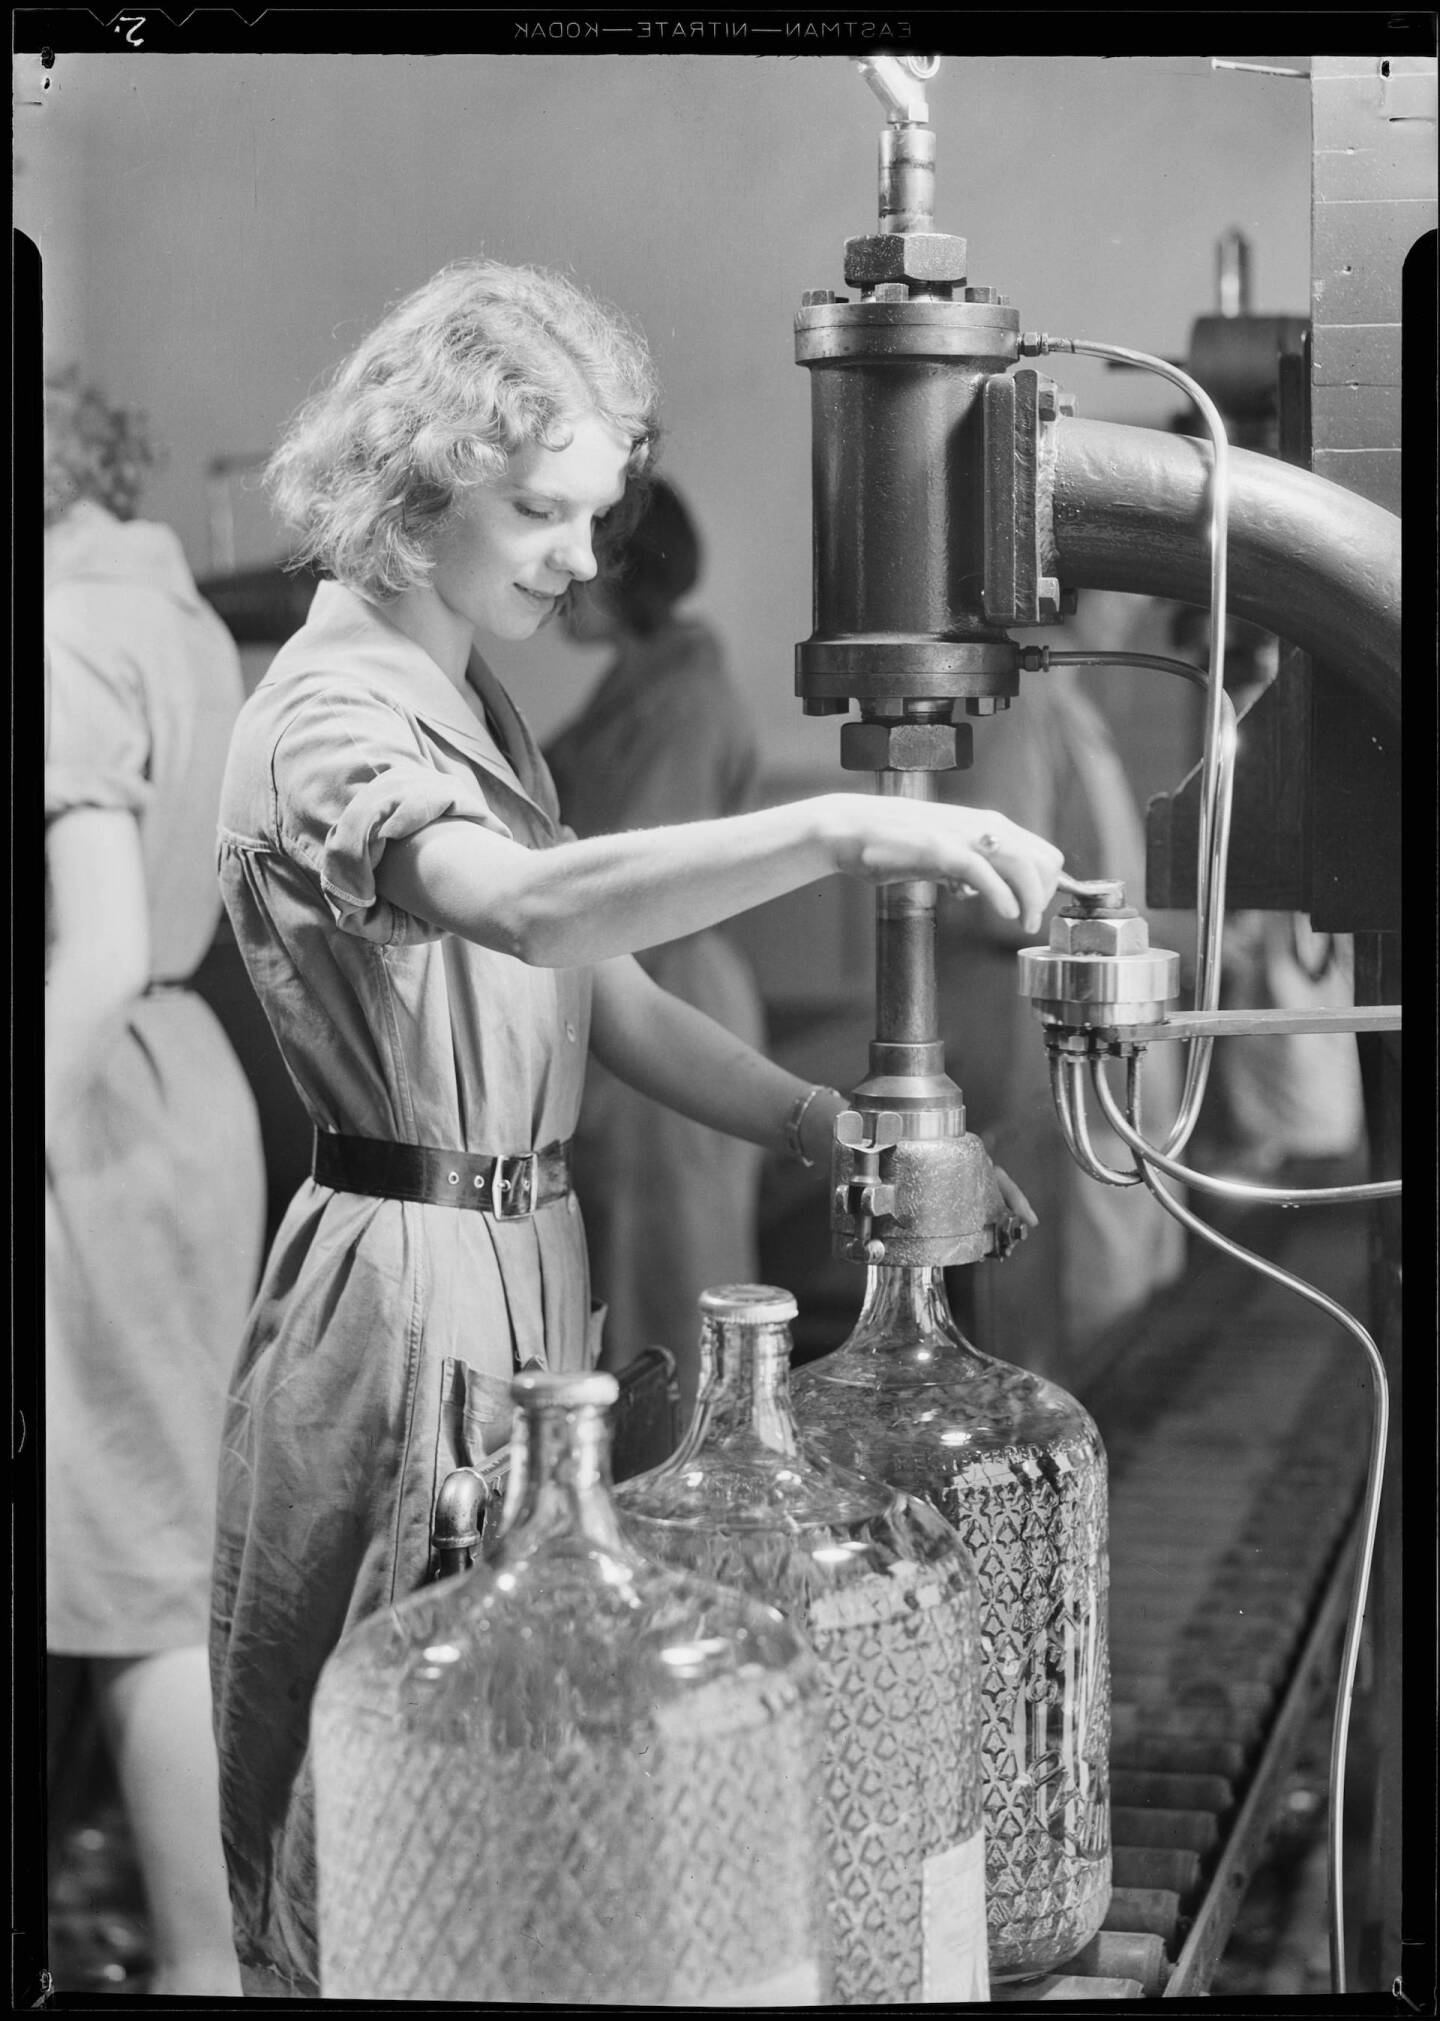 Bottling water at an Arrowhead plant, 1931